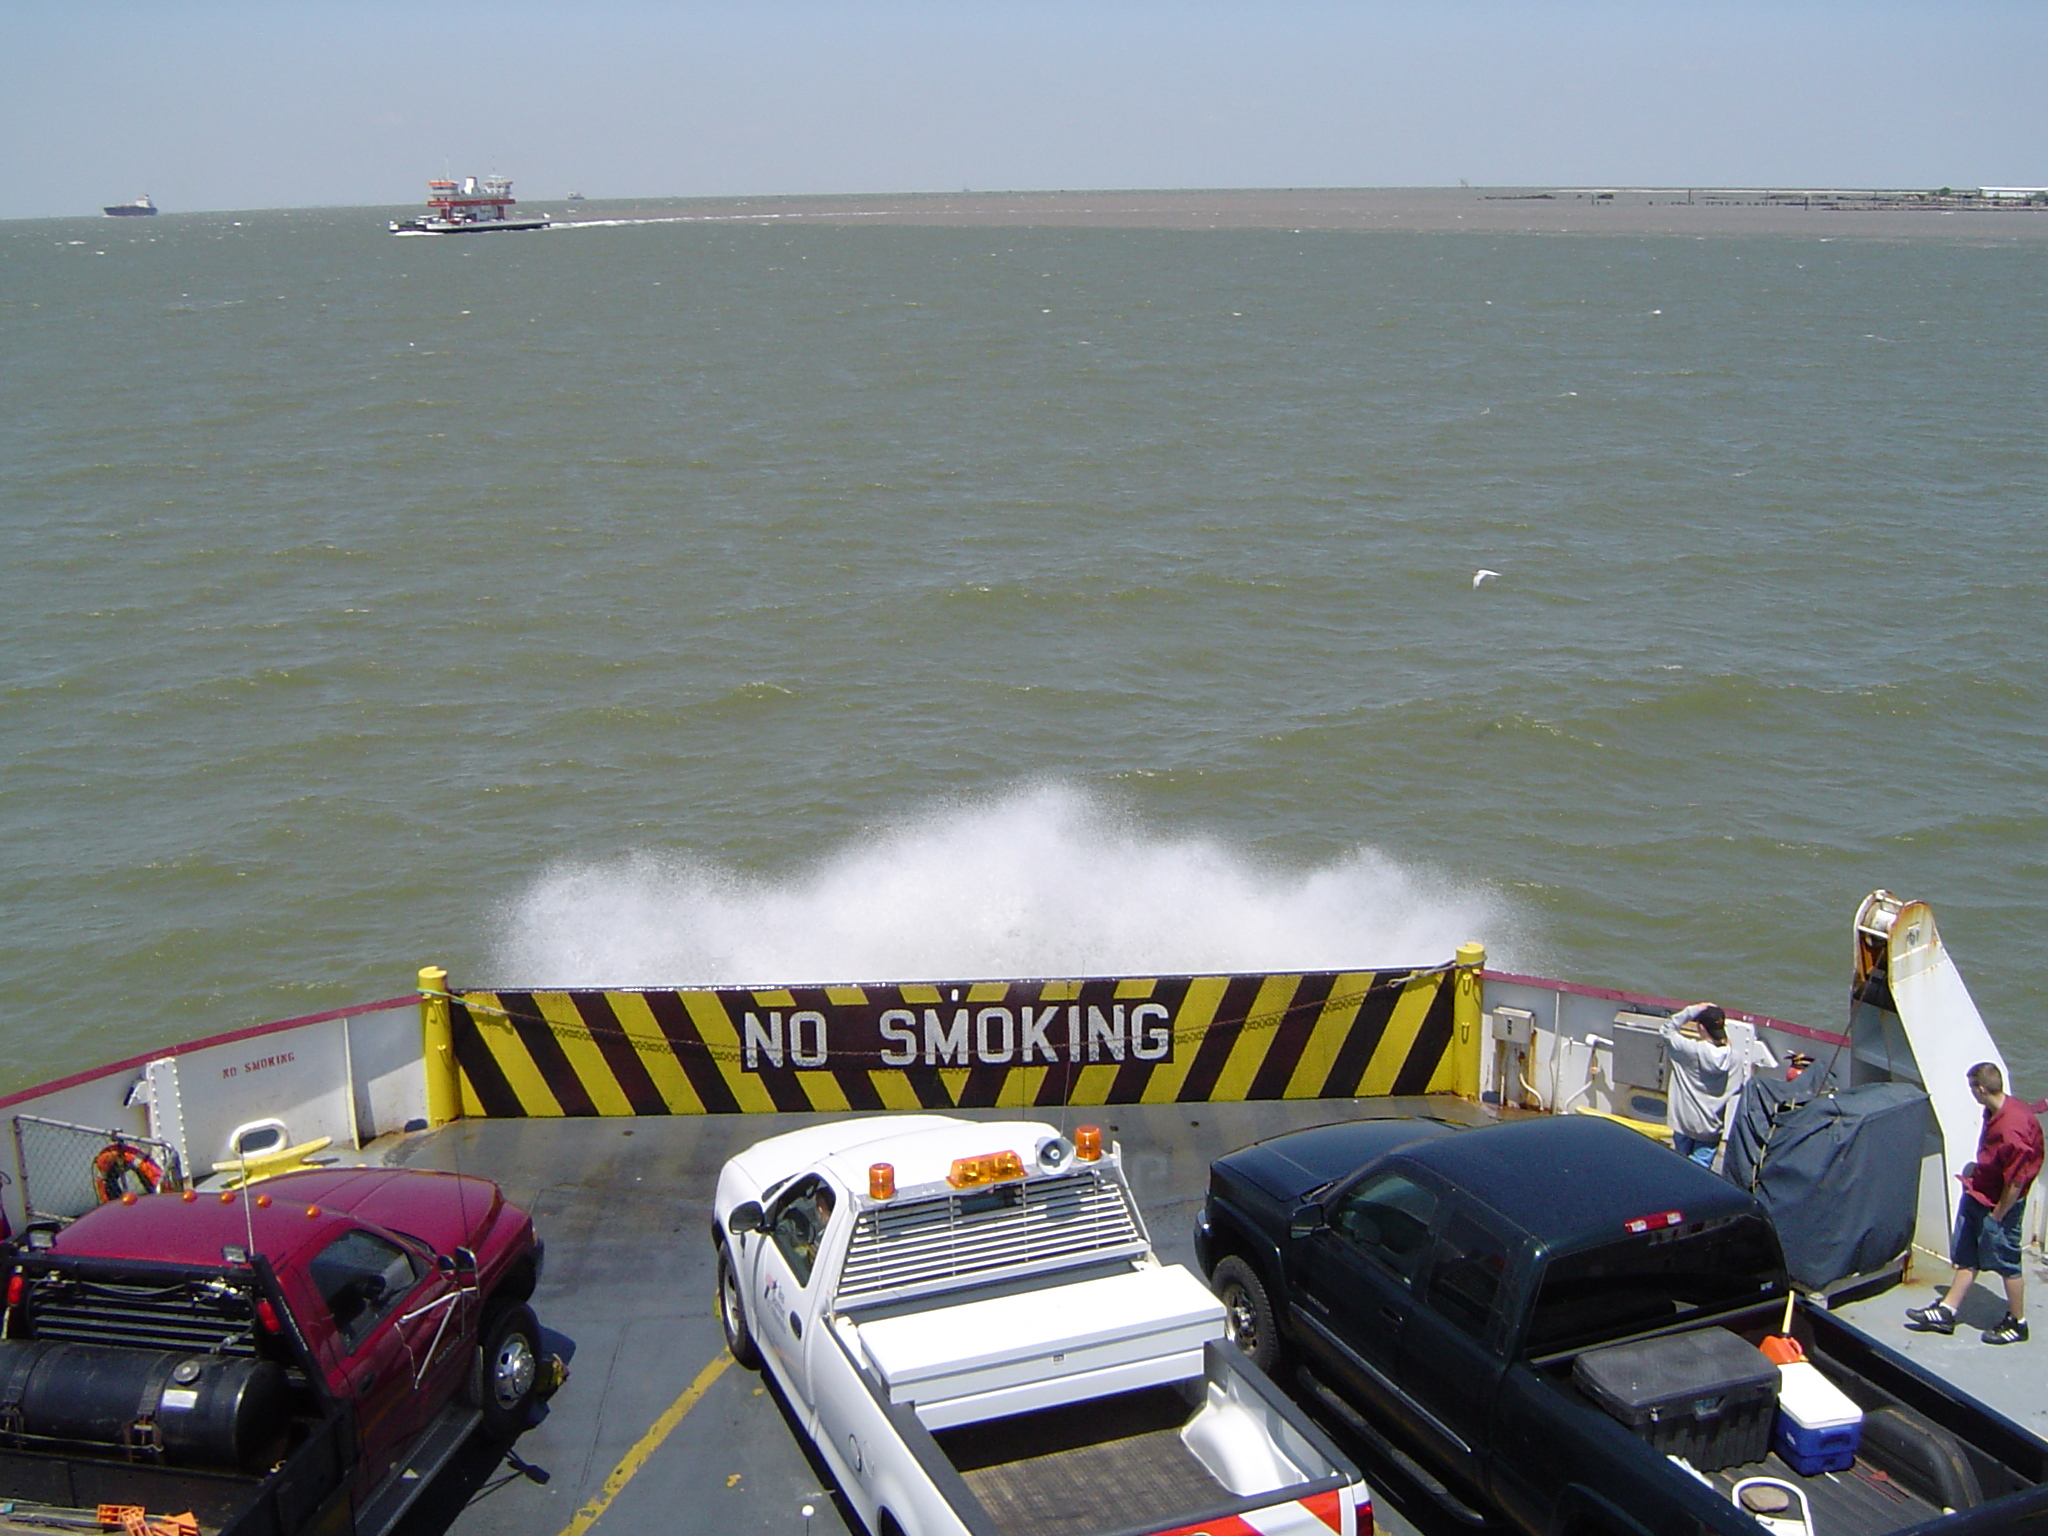 spray at the back of a car ferry